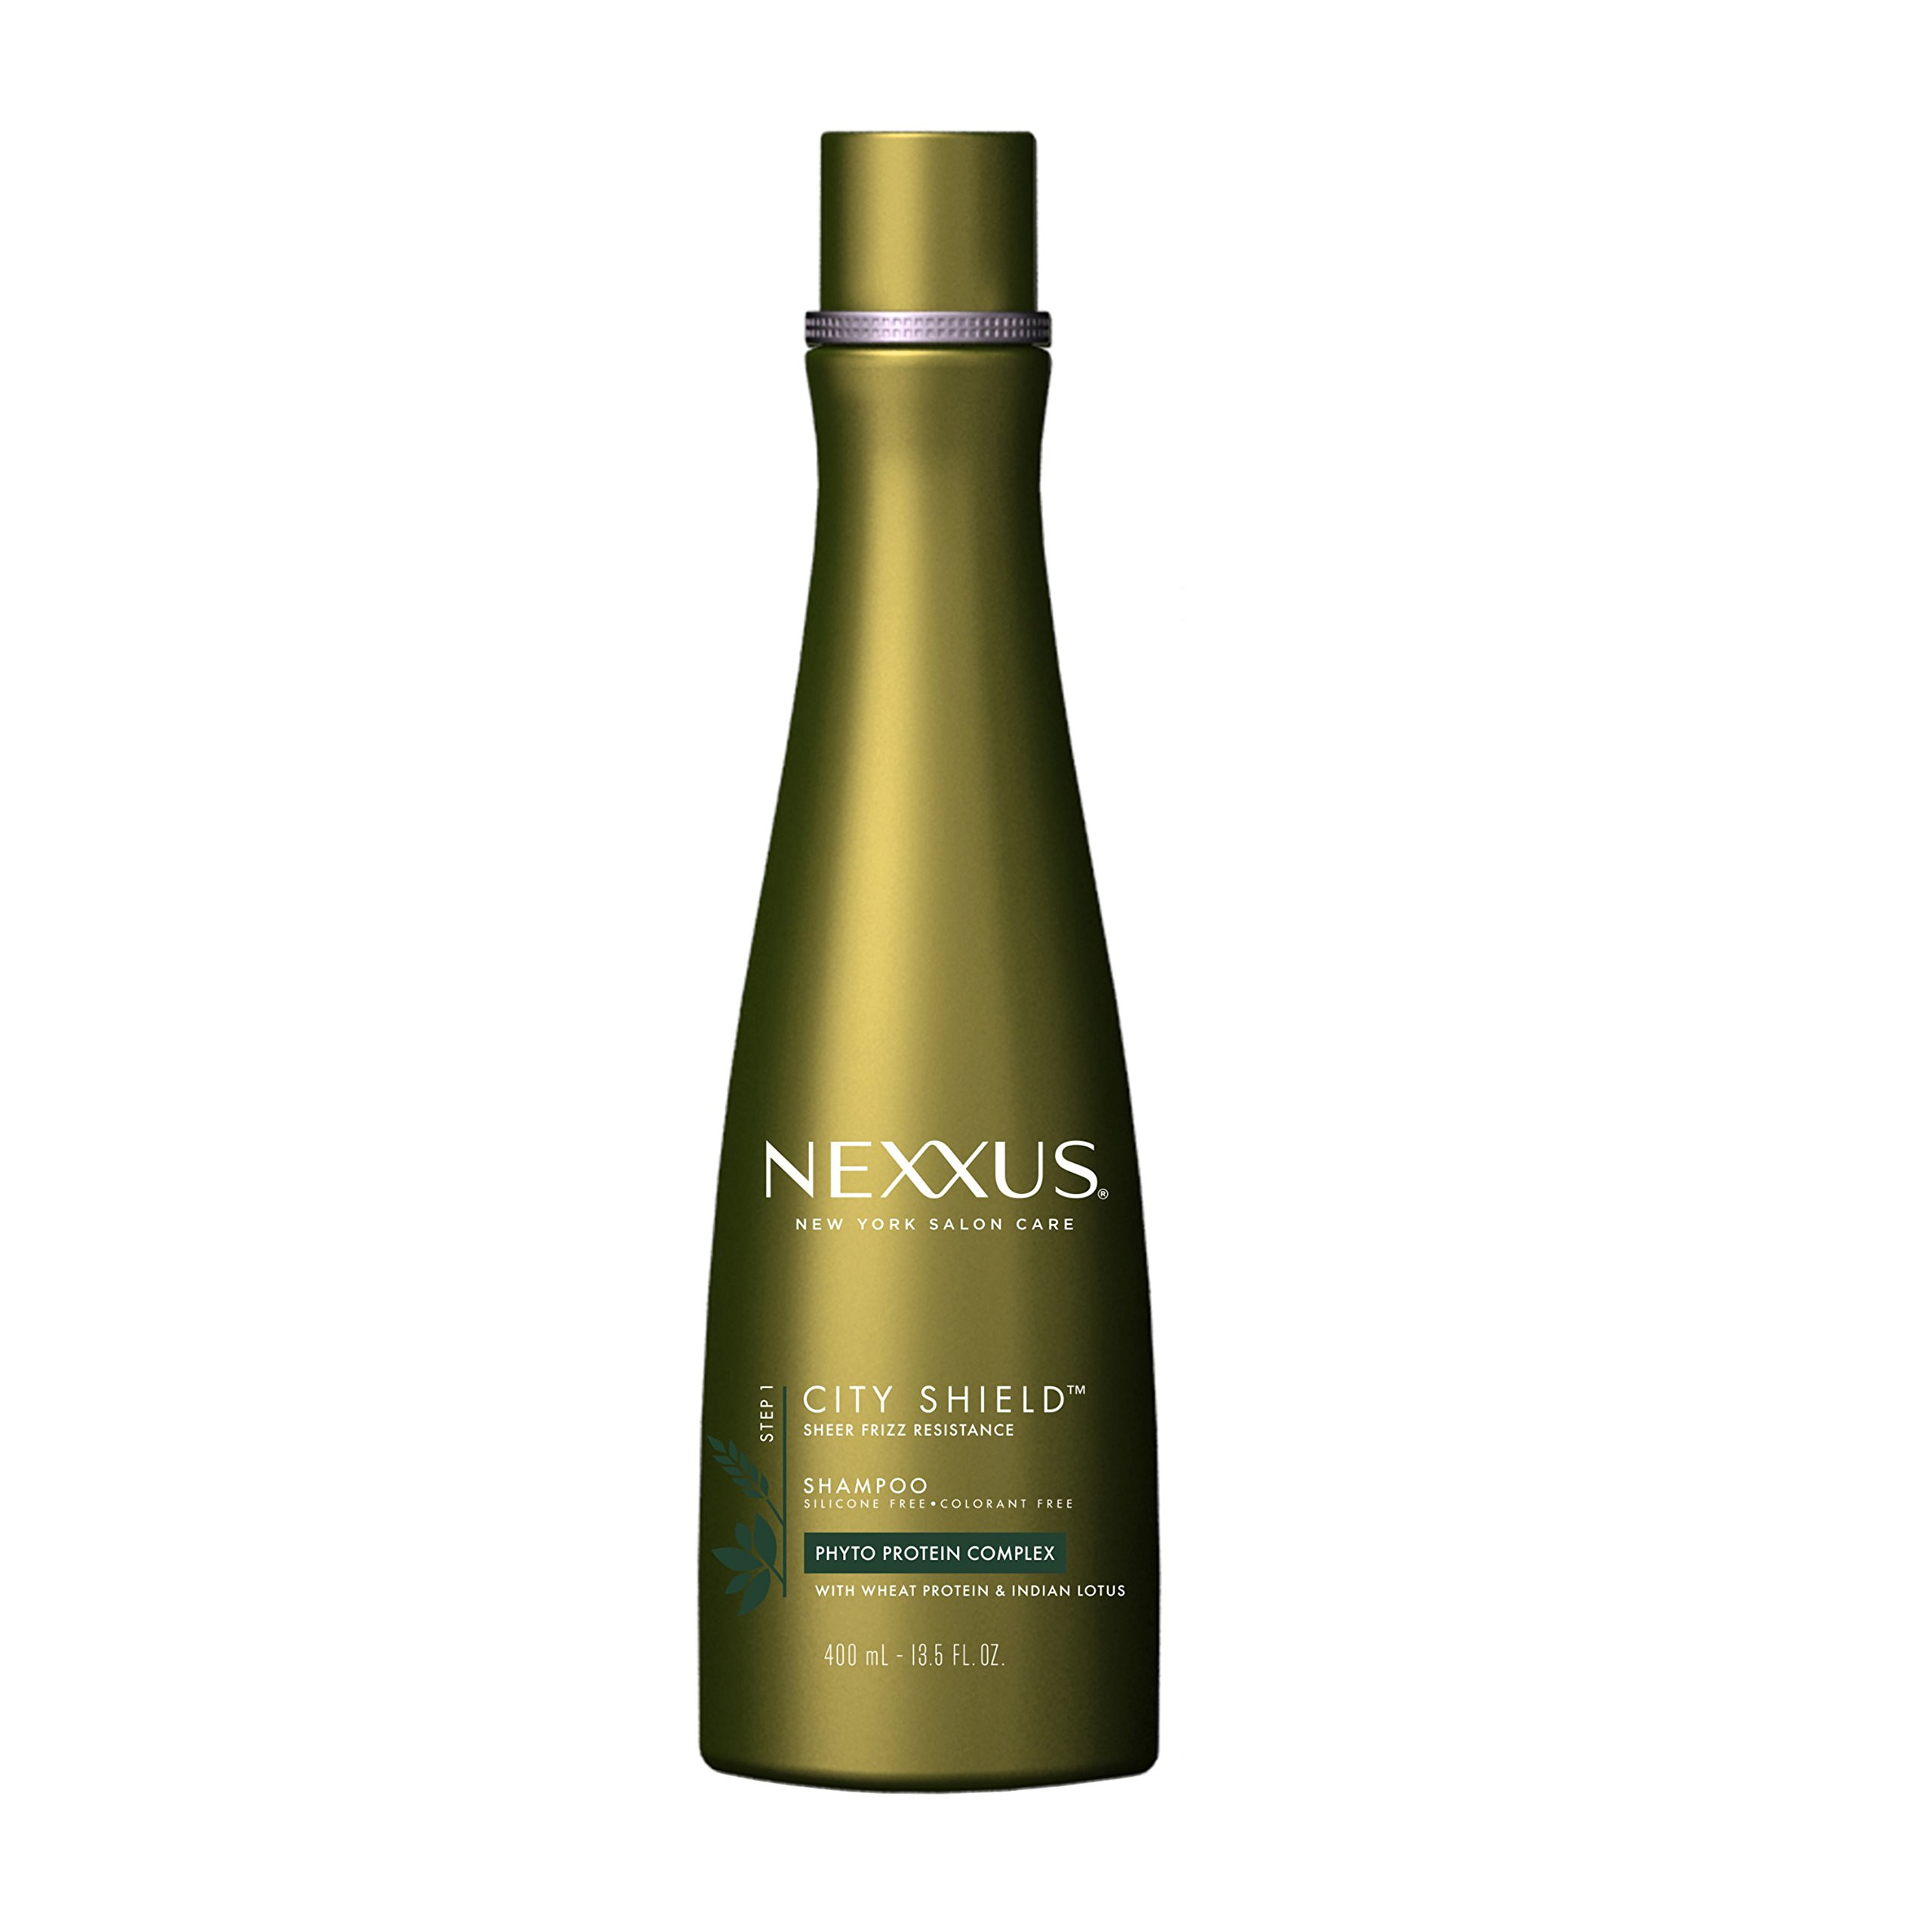 Nexxus City Shield Shampoo for All Hair Types 13 5 Fl Oz